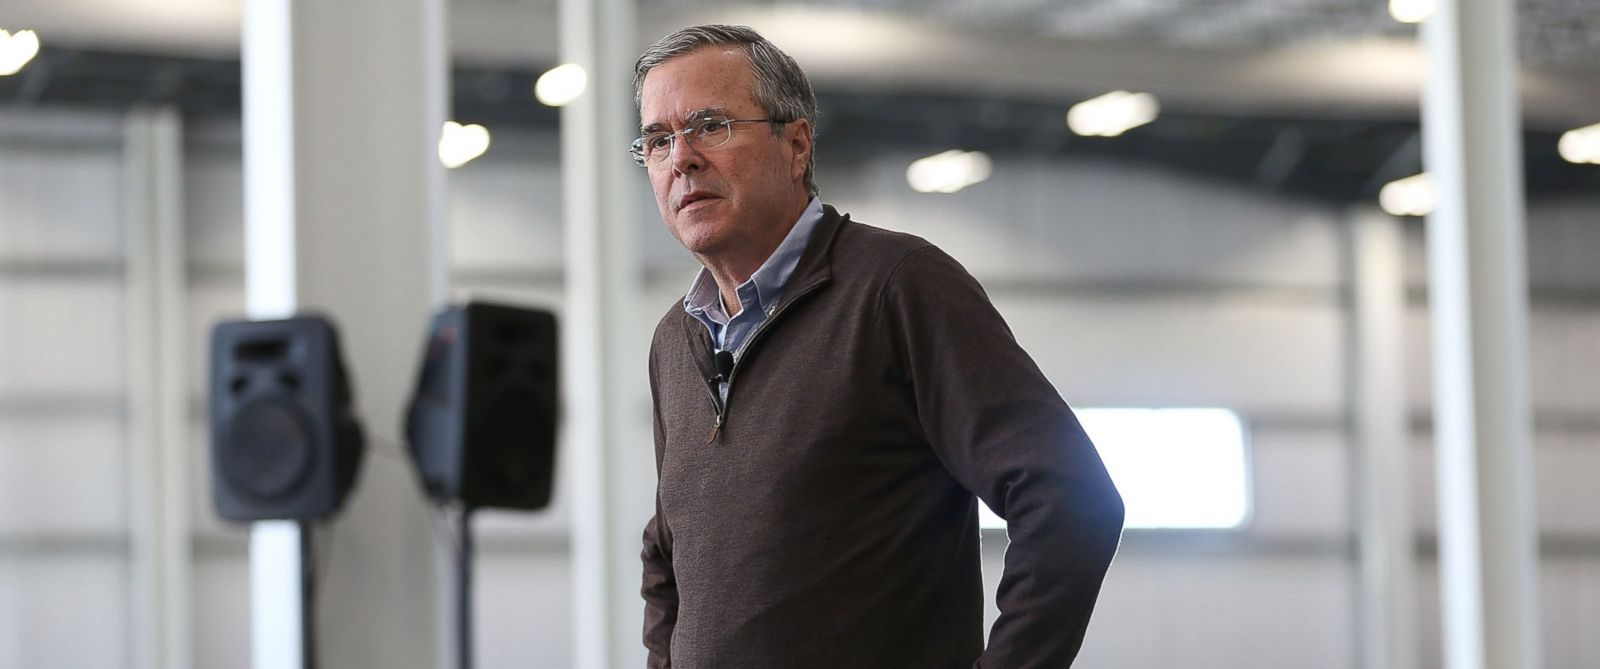 PHOTO: Republican presidential candidate Jeb Bush speaks during a town hall at the Brownells Firearms Manufacturing company on Jan. 12, 2016 in Grinnell, Iowa.